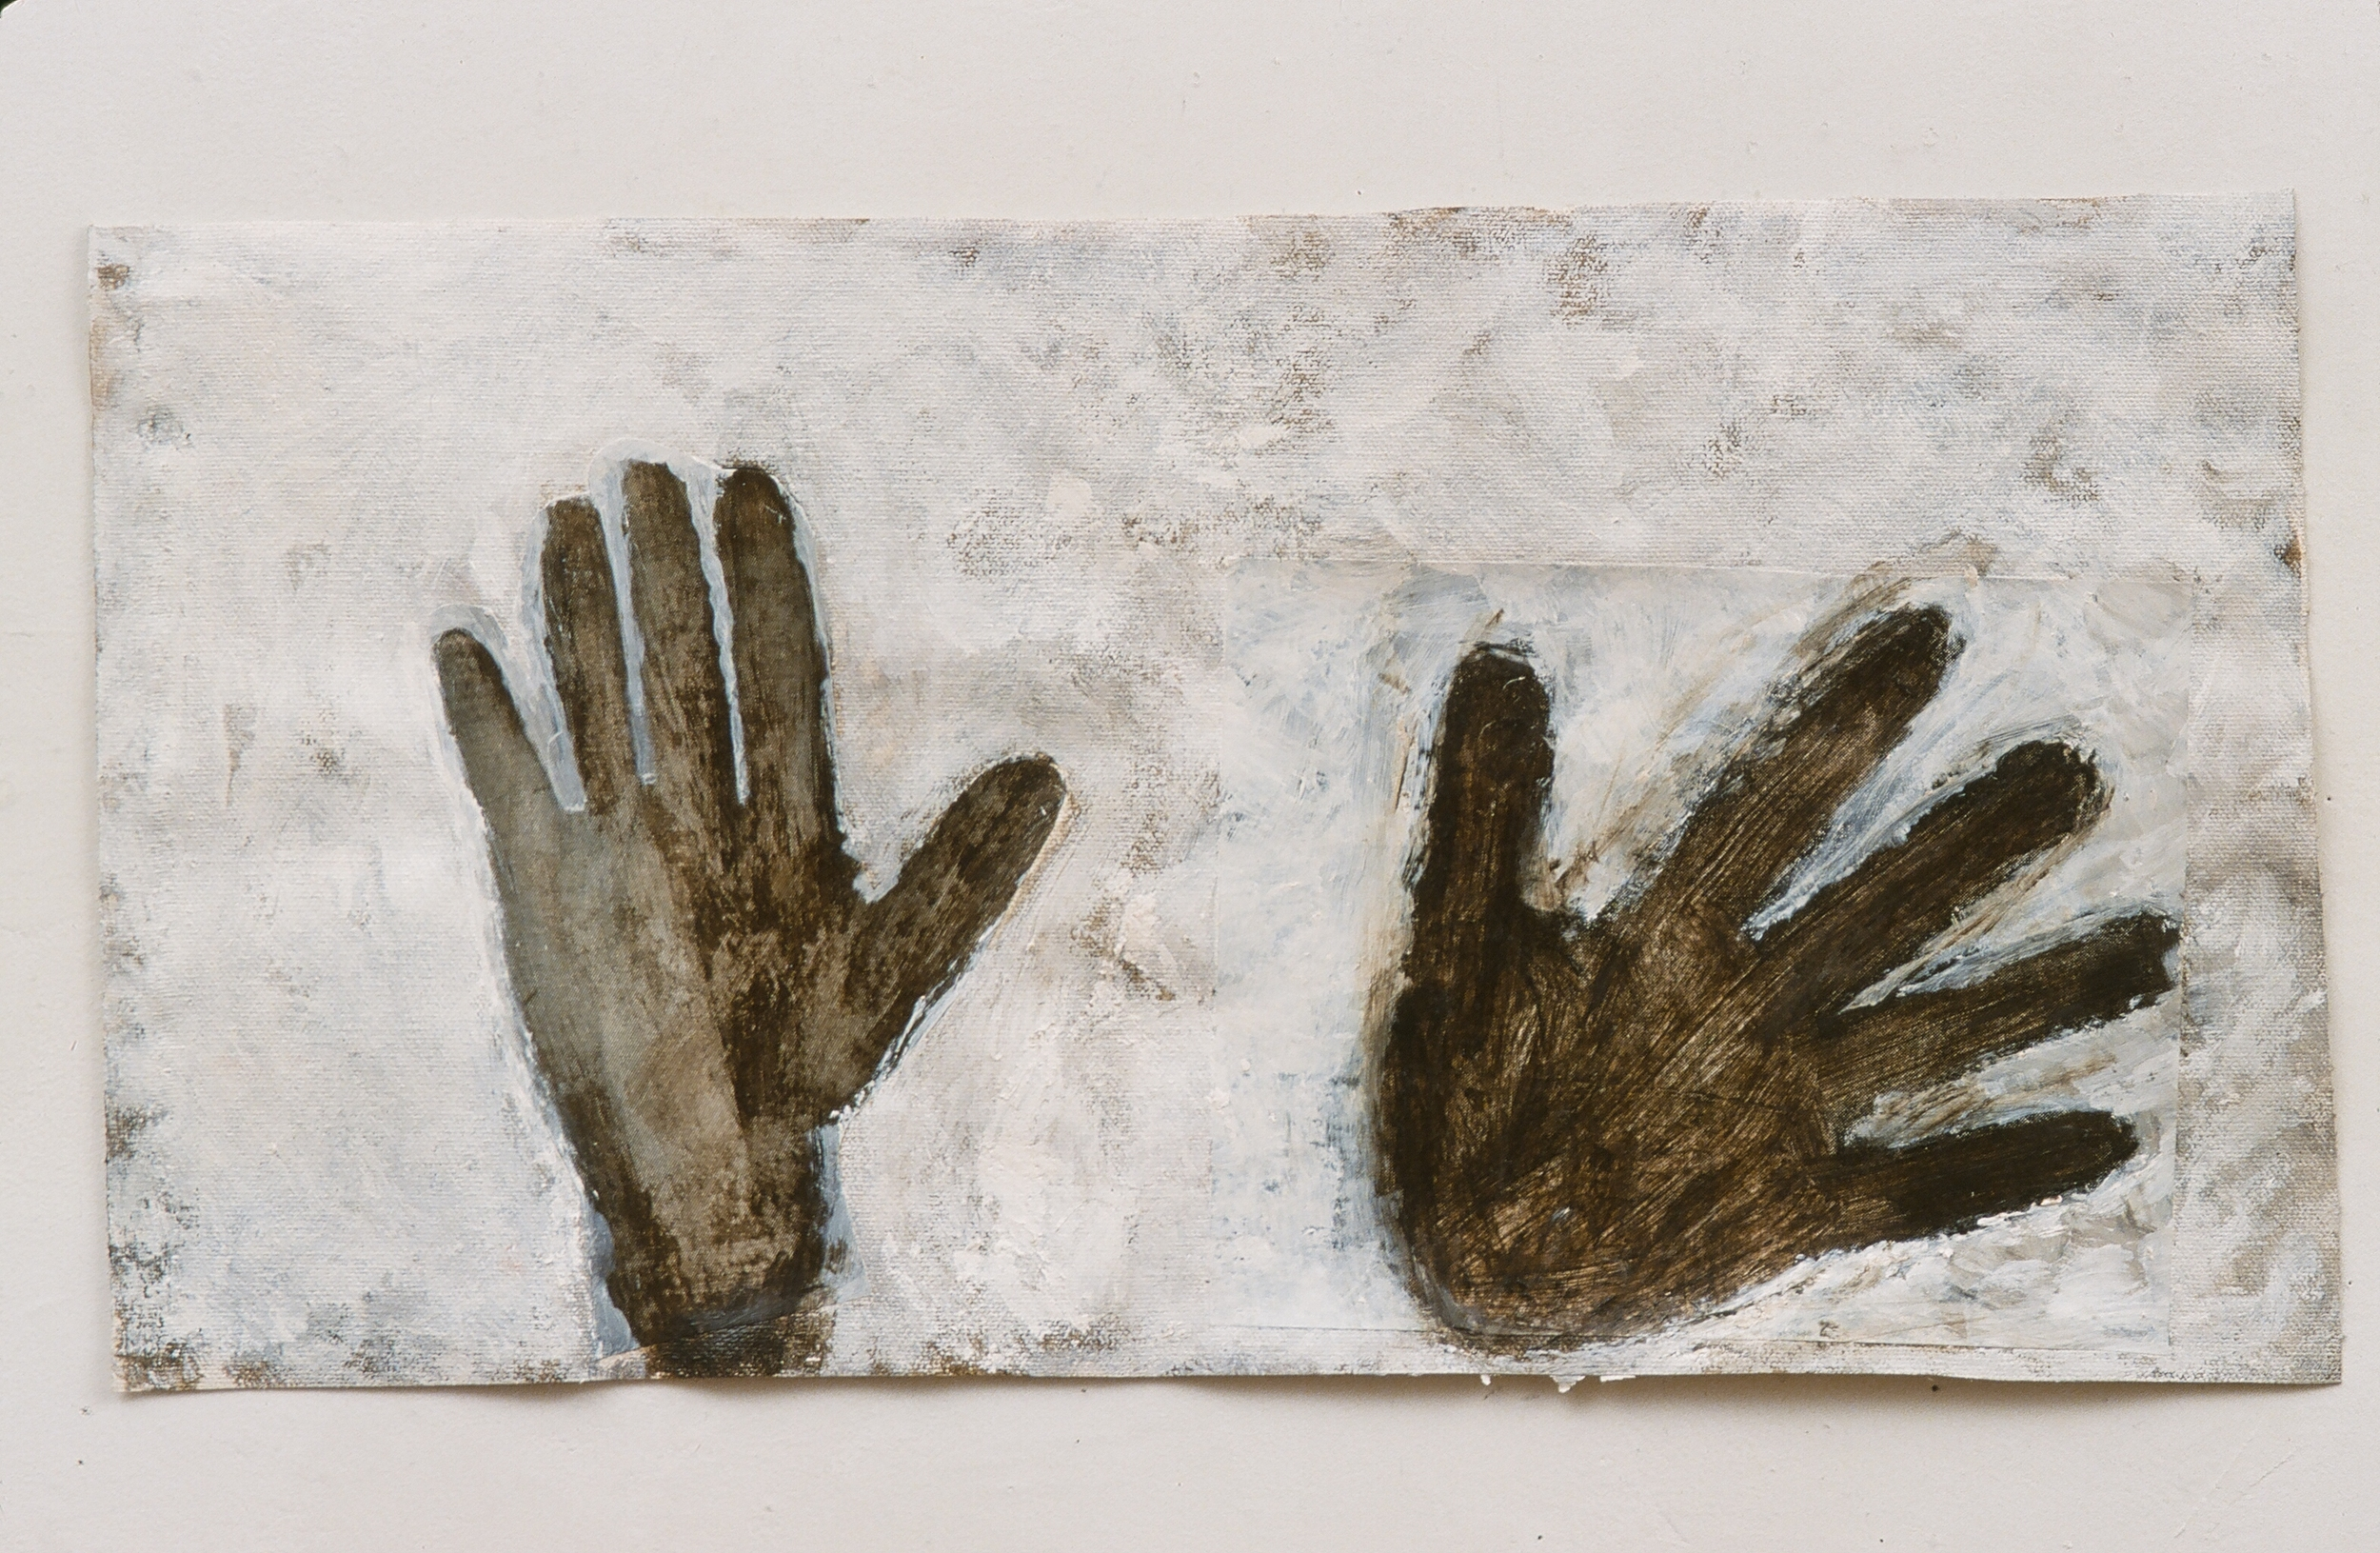 """Absence of hands 1  9"""" x 22"""" Xerox, pigment and acrylic on canvas 2006"""